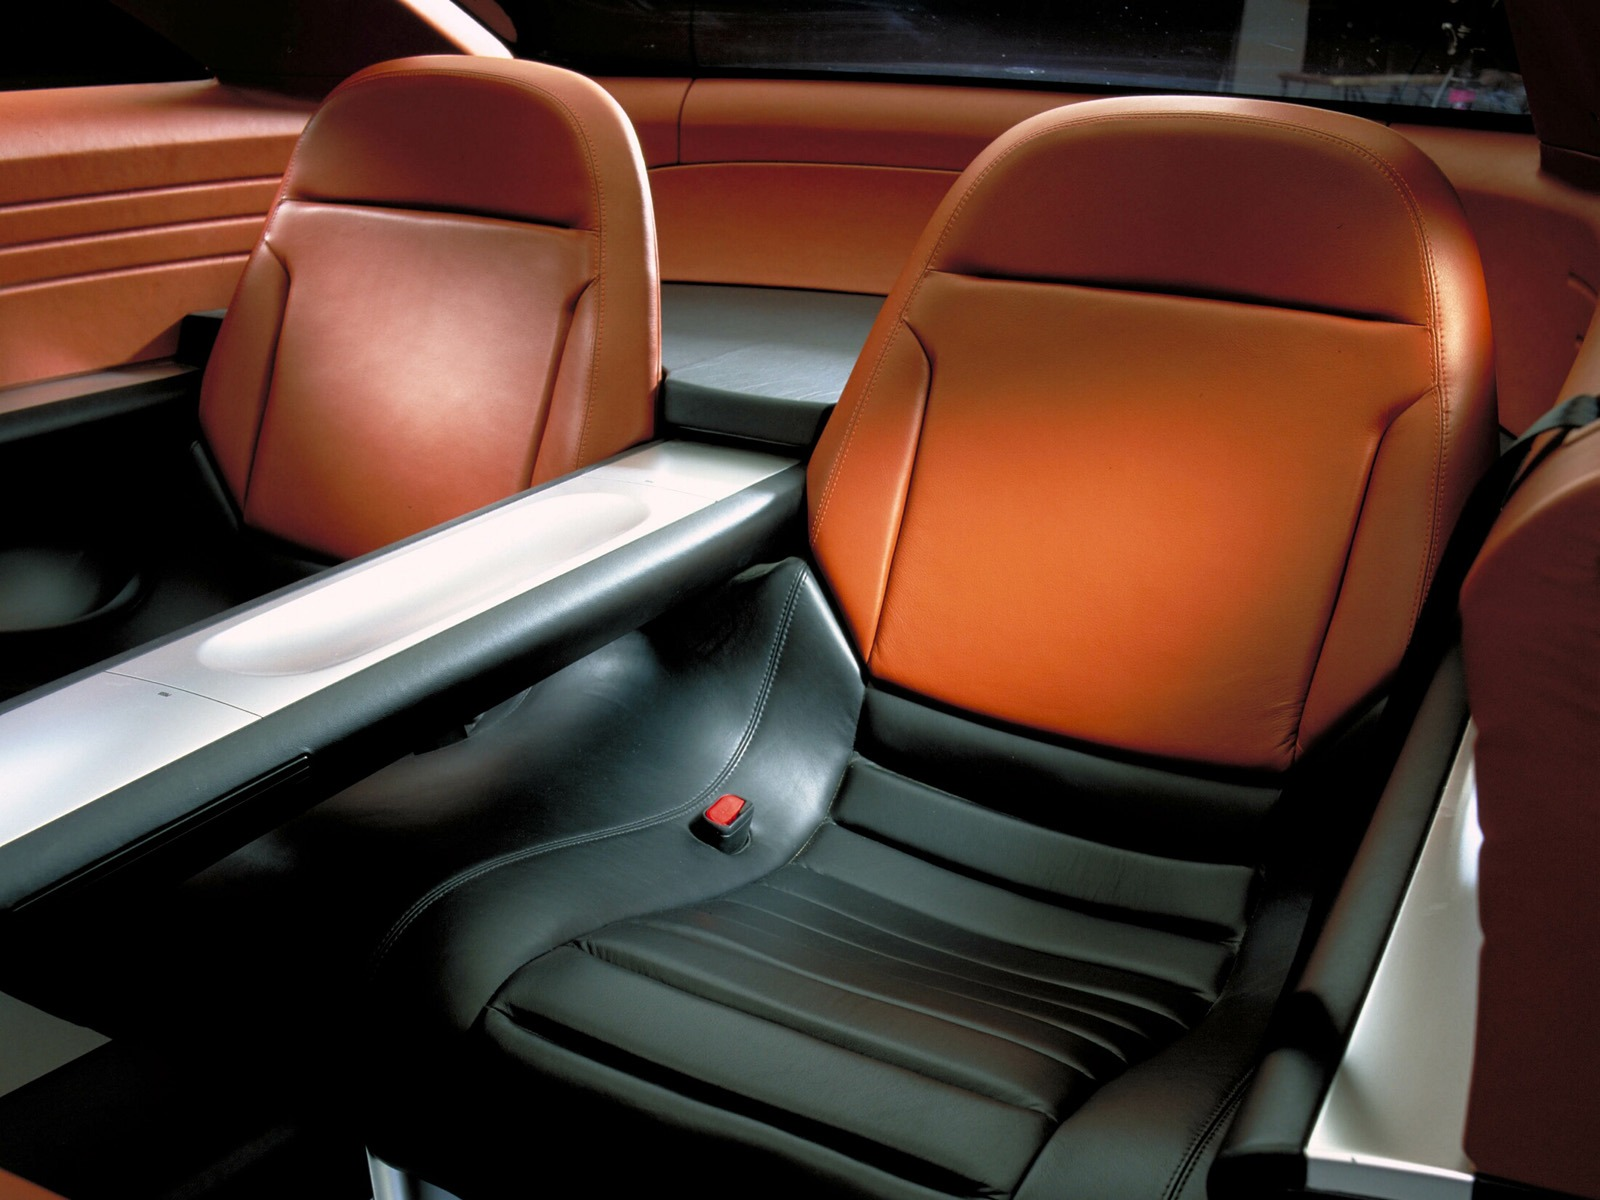 Volvo Near Me >> Ford Forty-Nine Concept (2001) - Old Concept Cars